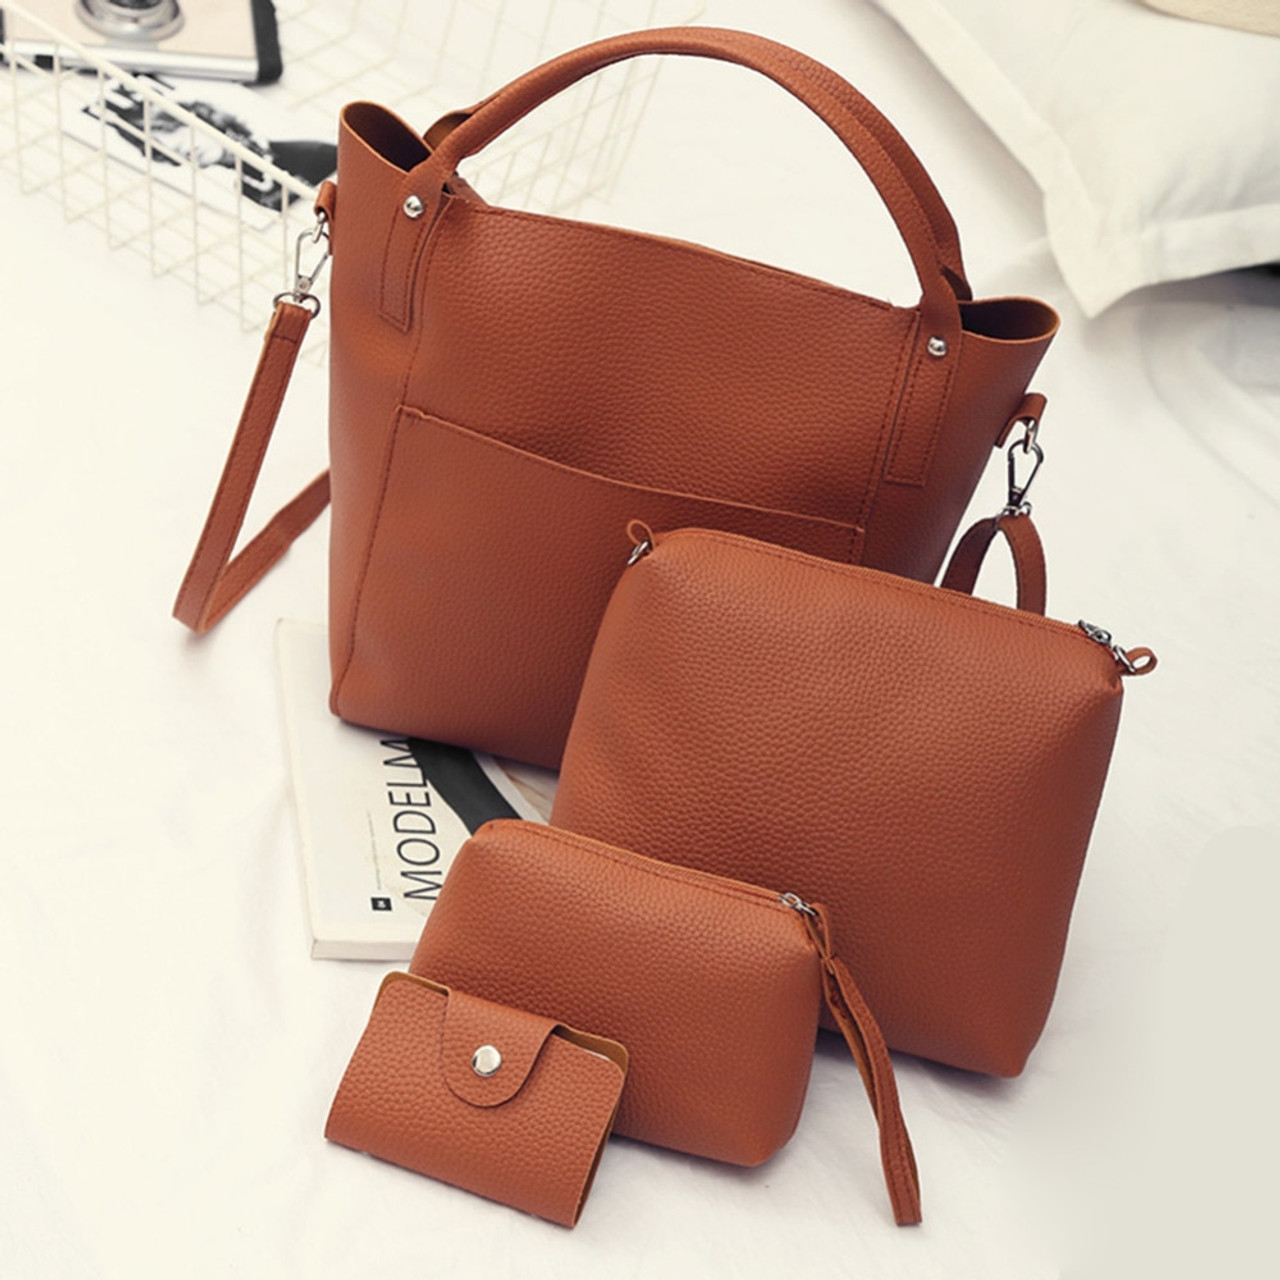 e9a243e18156 4pcs Women PU Leather Rivet Handbag Crossbody Bag Clutch Bag Card Holder Bucket  Handbags Composite Set - OnshopDeals.Com